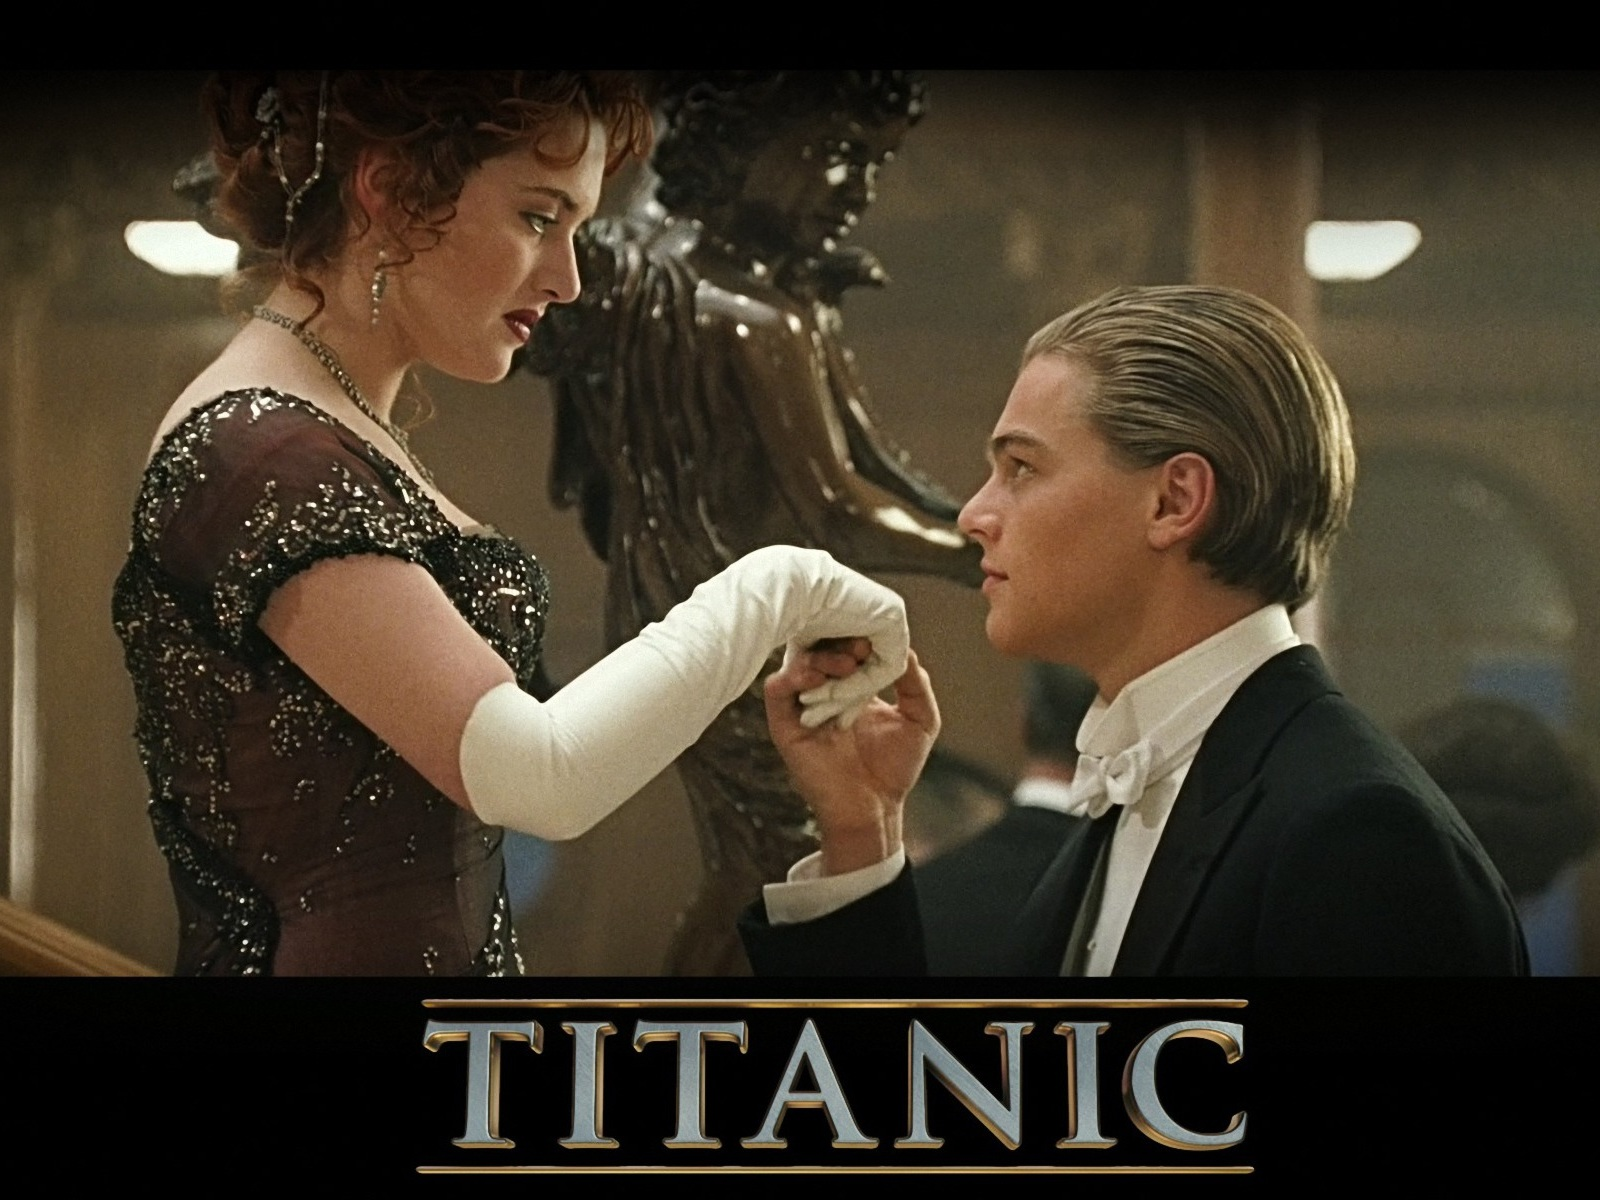 Titanic 3D Poster 1600x1200 Wallpapers 1600x1200 1600x1200